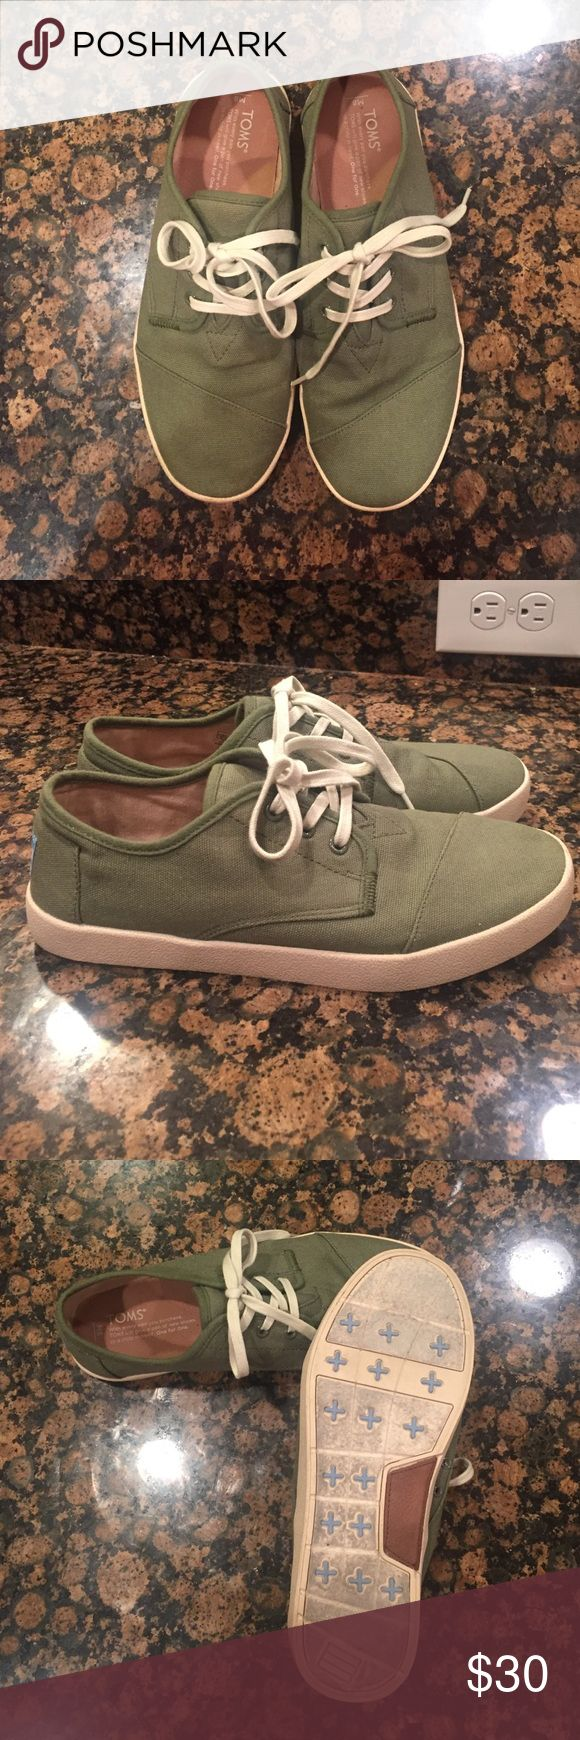 Toms sneakers Only worn 3 times. In great condition. Size 8 Shoes Sneakers